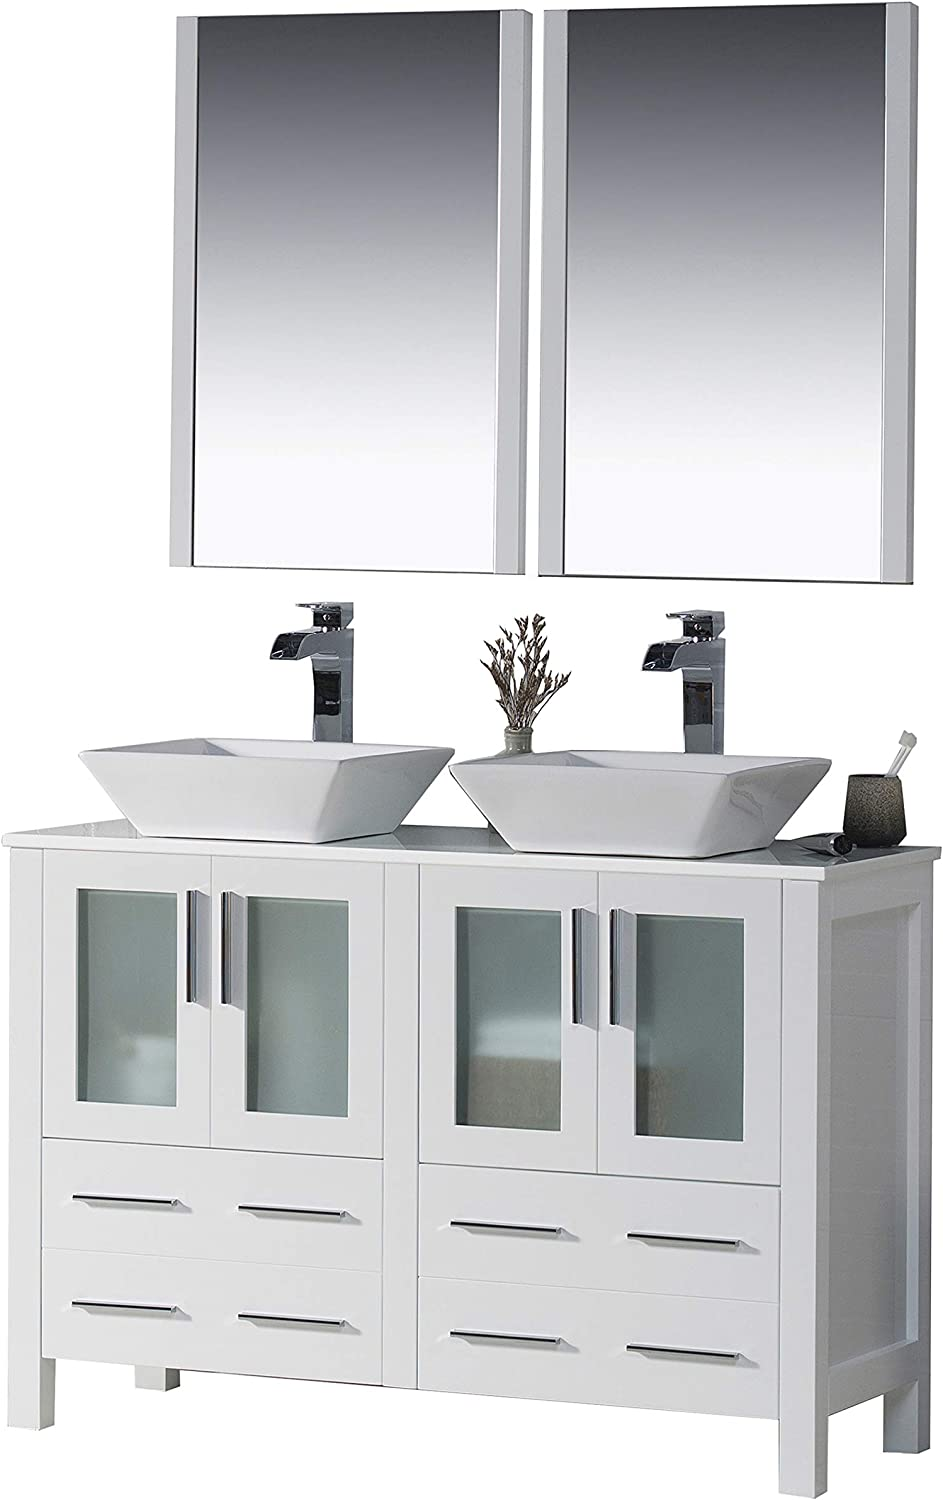 Amazon Com Blossom Sydney 48 Inches Double Bathroom Vanity Vessel Ceramic Sink With Mirror All Wood Glossy White 001 48 01d 1616v Tools Home Improvement